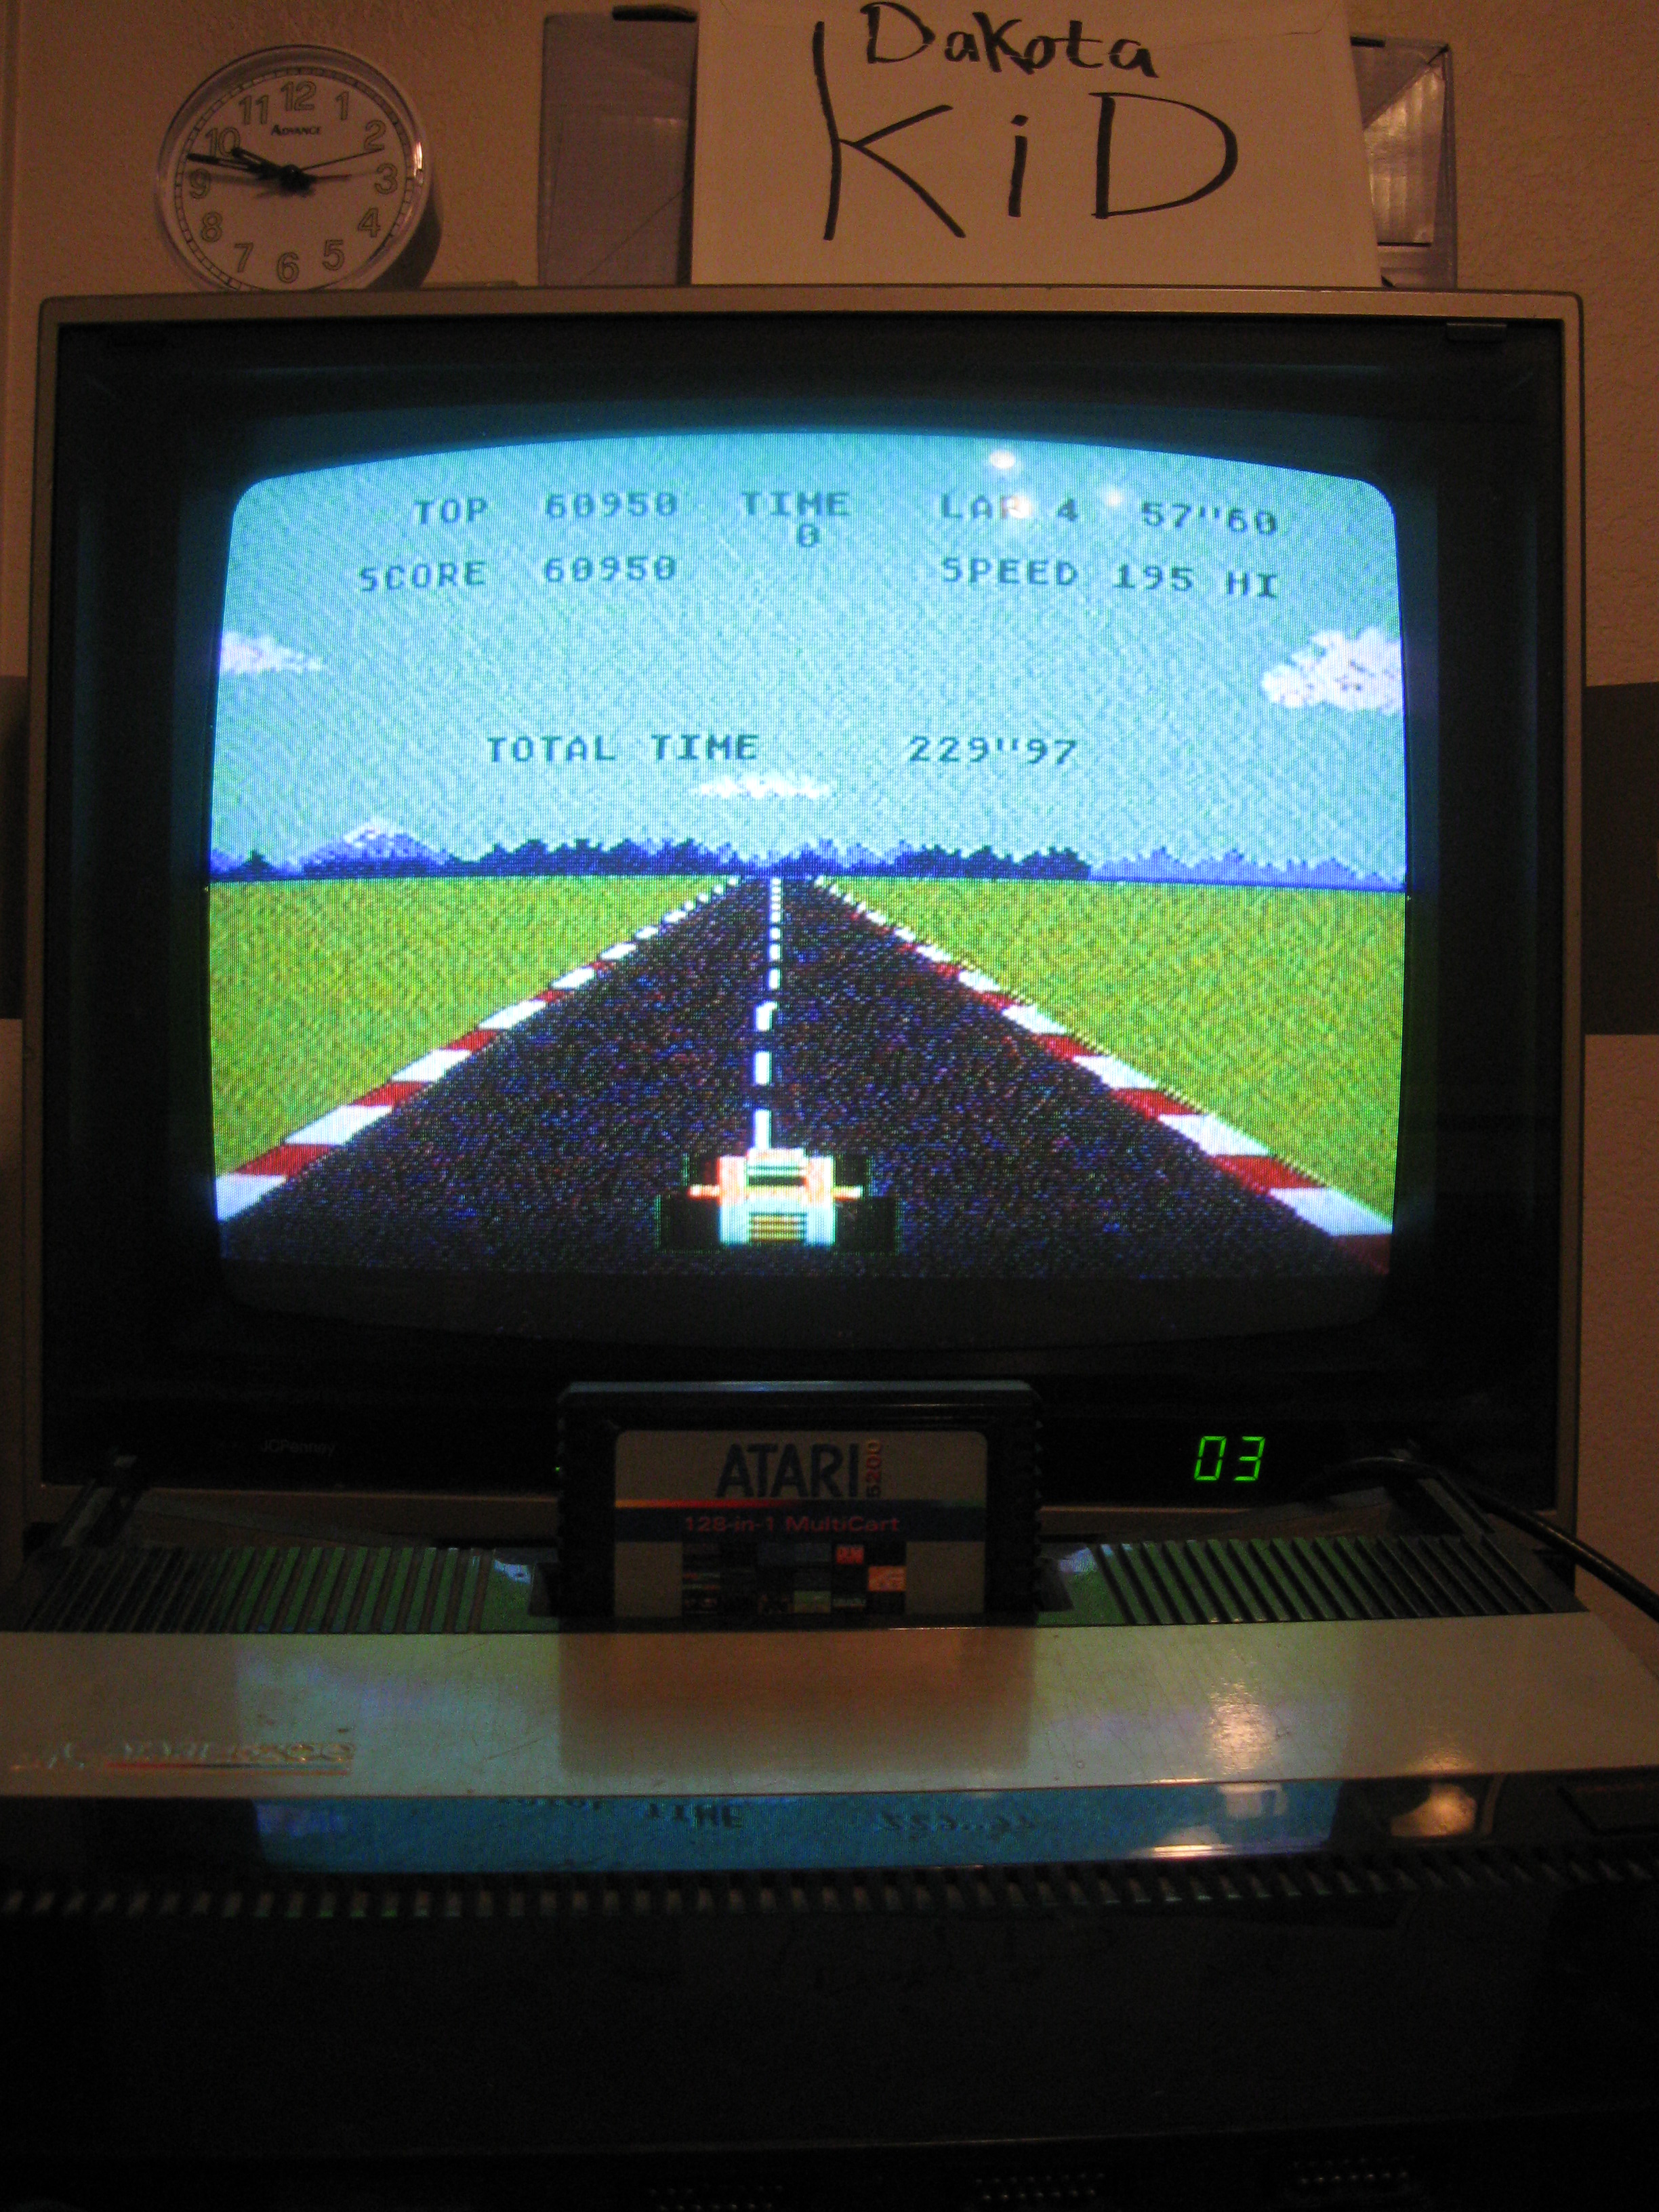 DakotaKid: Pole Position (Atari 5200) 60,950 points on 2016-04-25 17:49:04